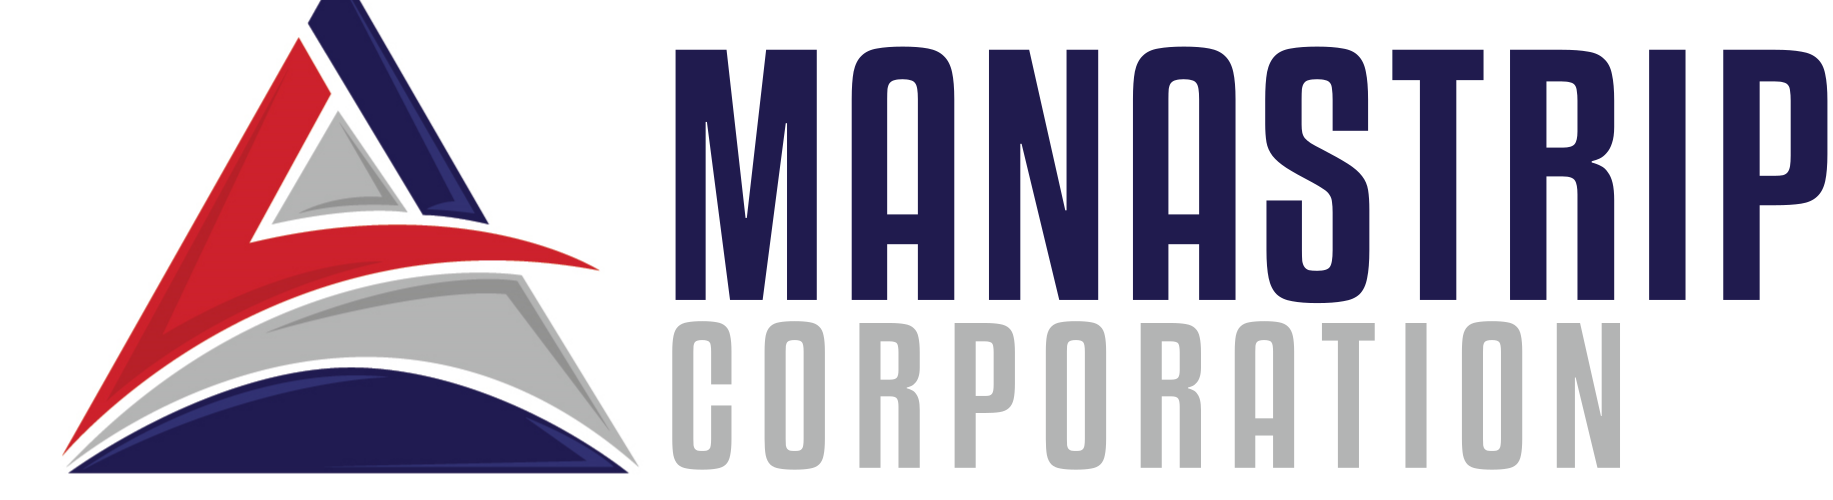 Manastrip Corporation